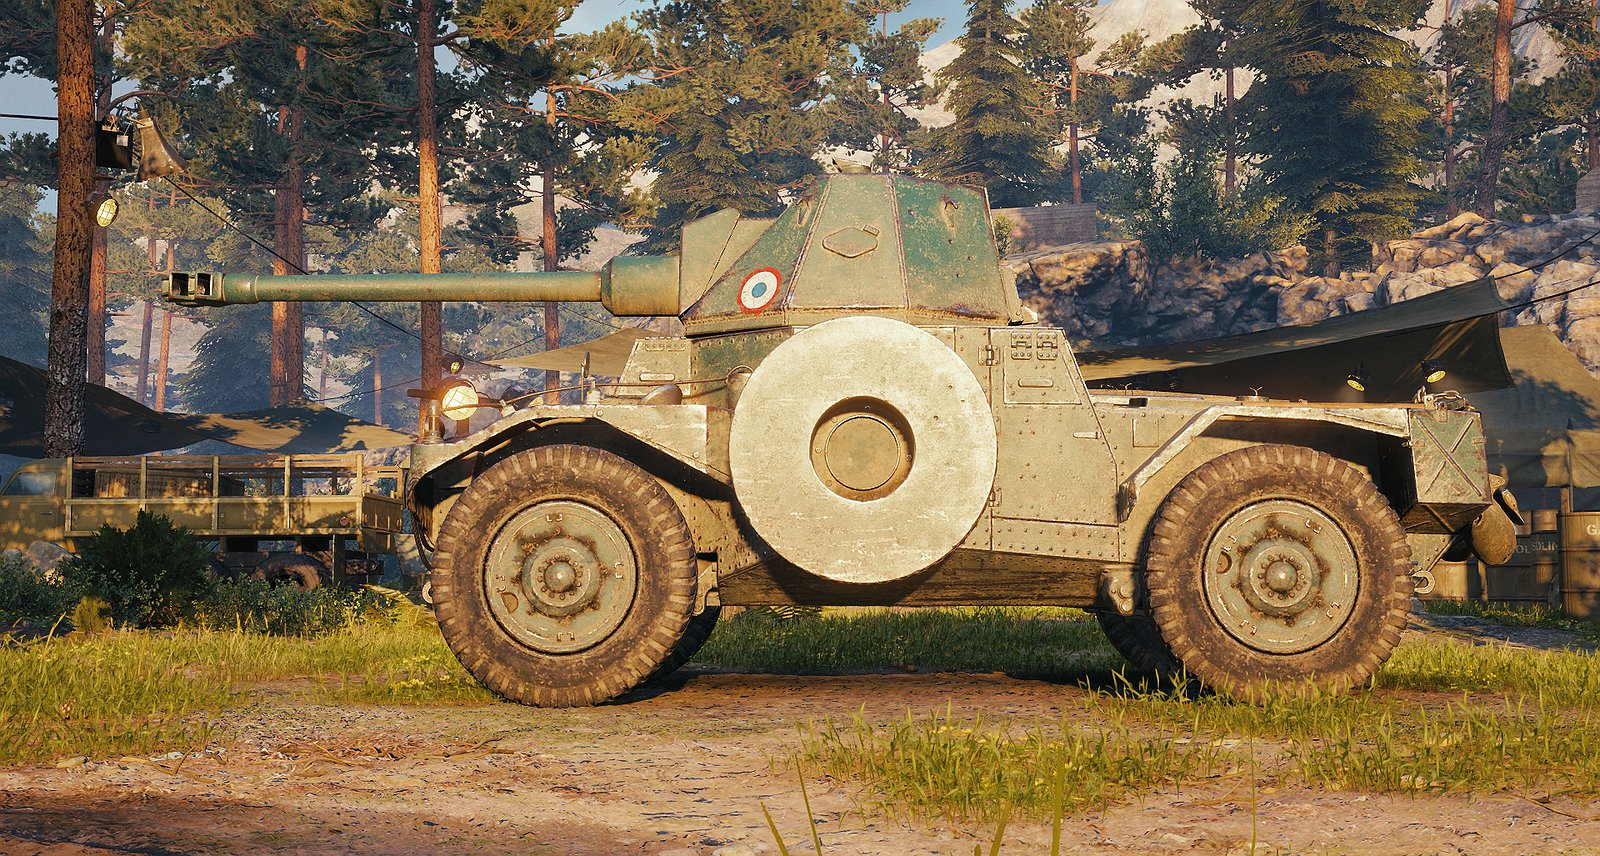 Classic's Panhard AMD 178B Turret/Gun Swap (Simple Remodel)